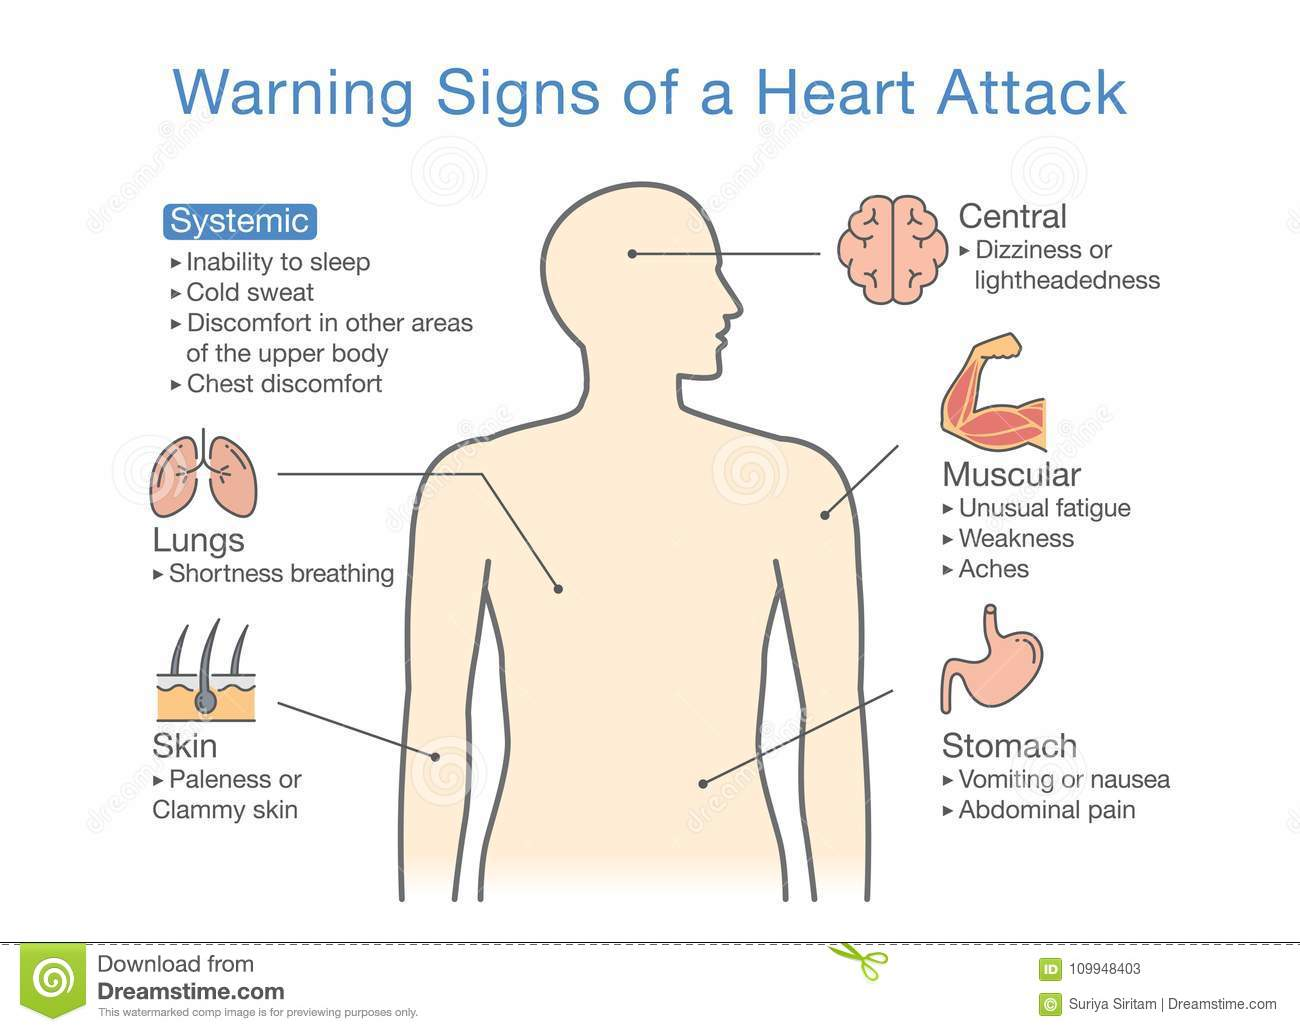 Diagram about warning signs of a heart attack stock vector download diagram about warning signs of a heart attack stock vector illustration of body ccuart Image collections